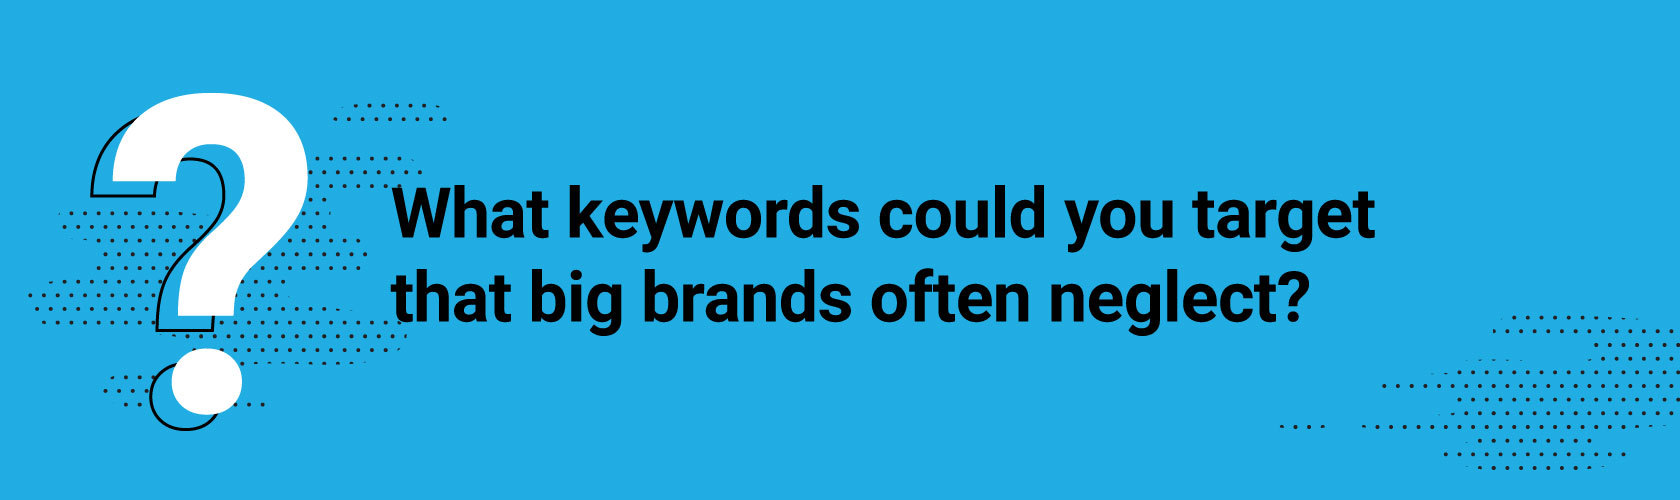 What keywords could you target that big brands often neglect?